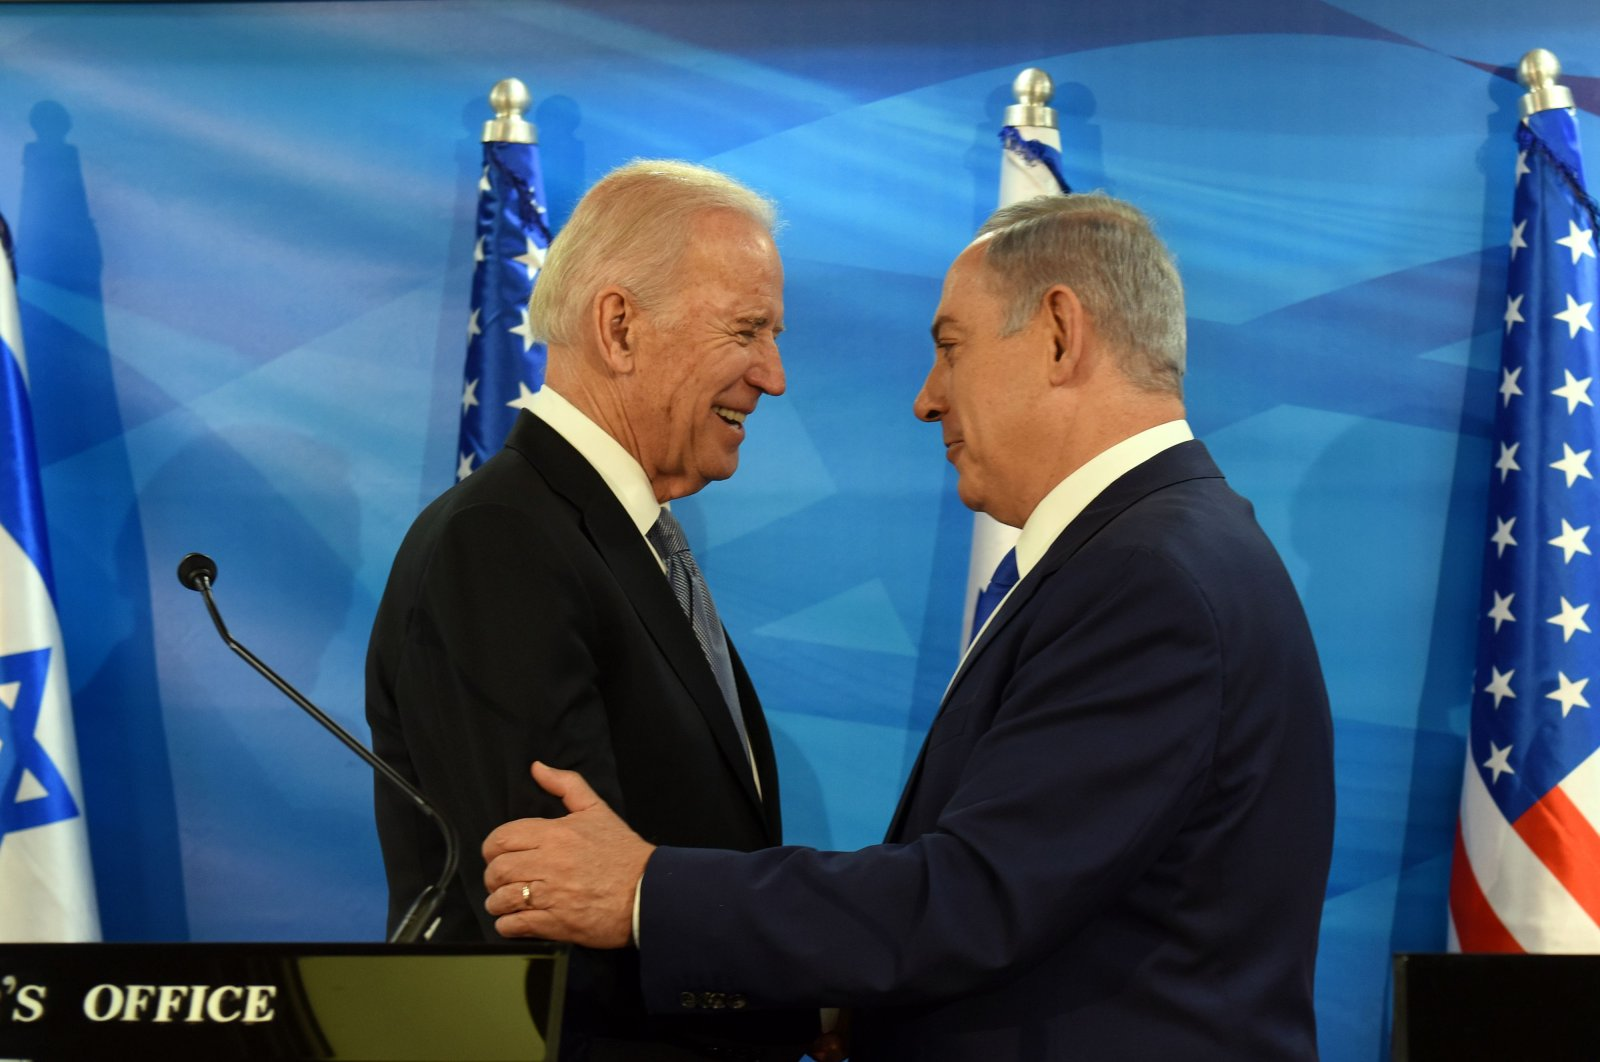 U.S. Vice President Joe Biden and Israeli Prime Minister Benjamin Netanyahu shake hands while giving joint statements at the prime minister's office in Jerusalem, March 9, 2016. (AFP Photo)